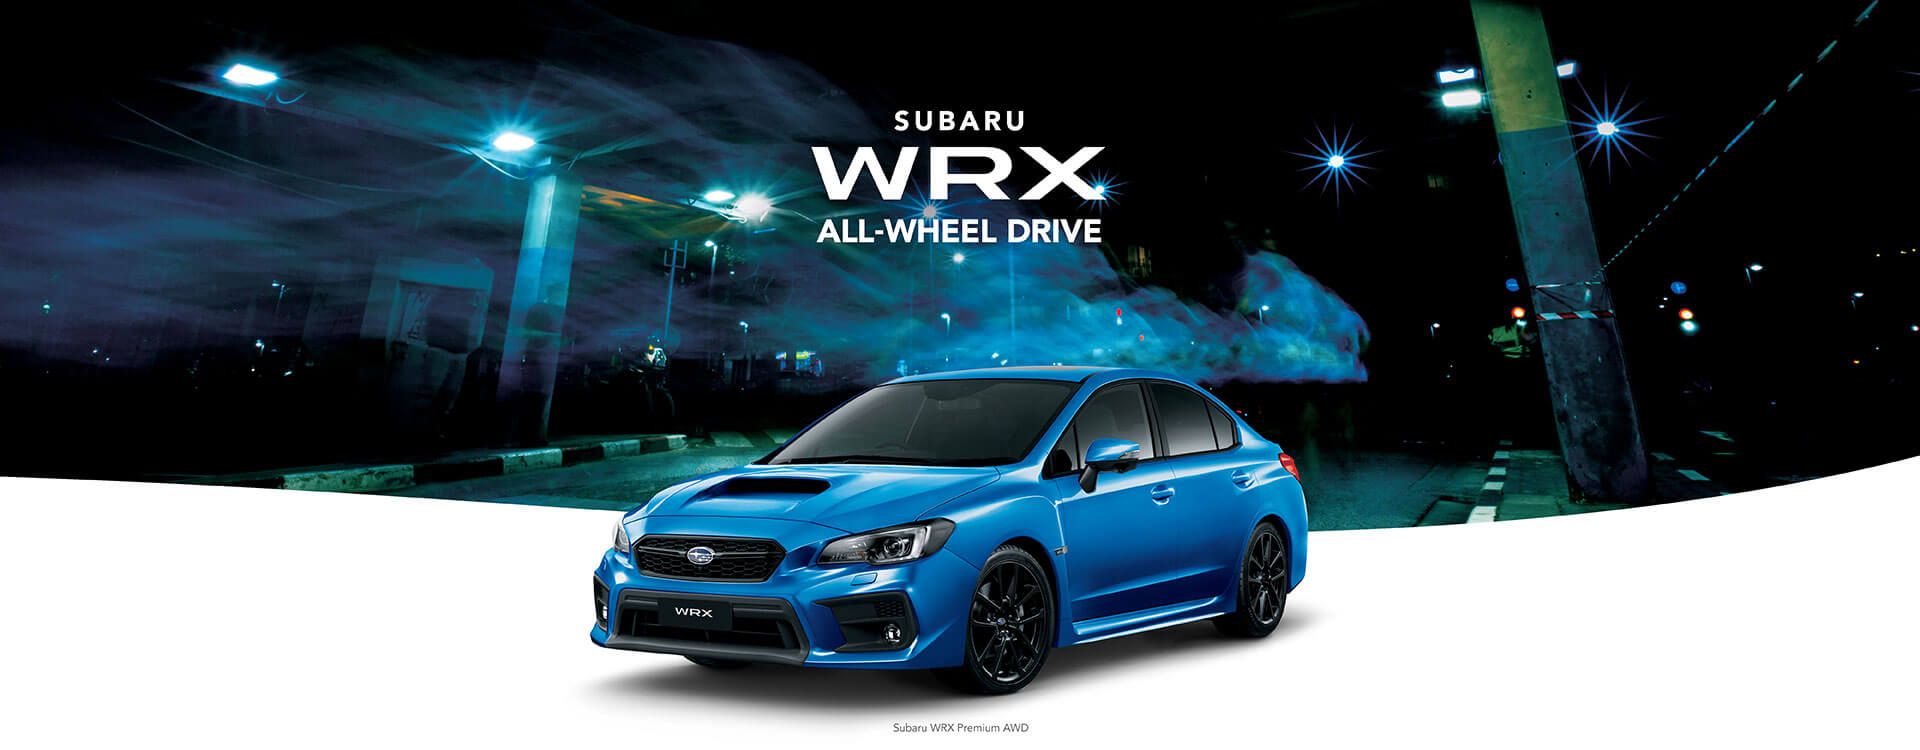 Must see WRX Image